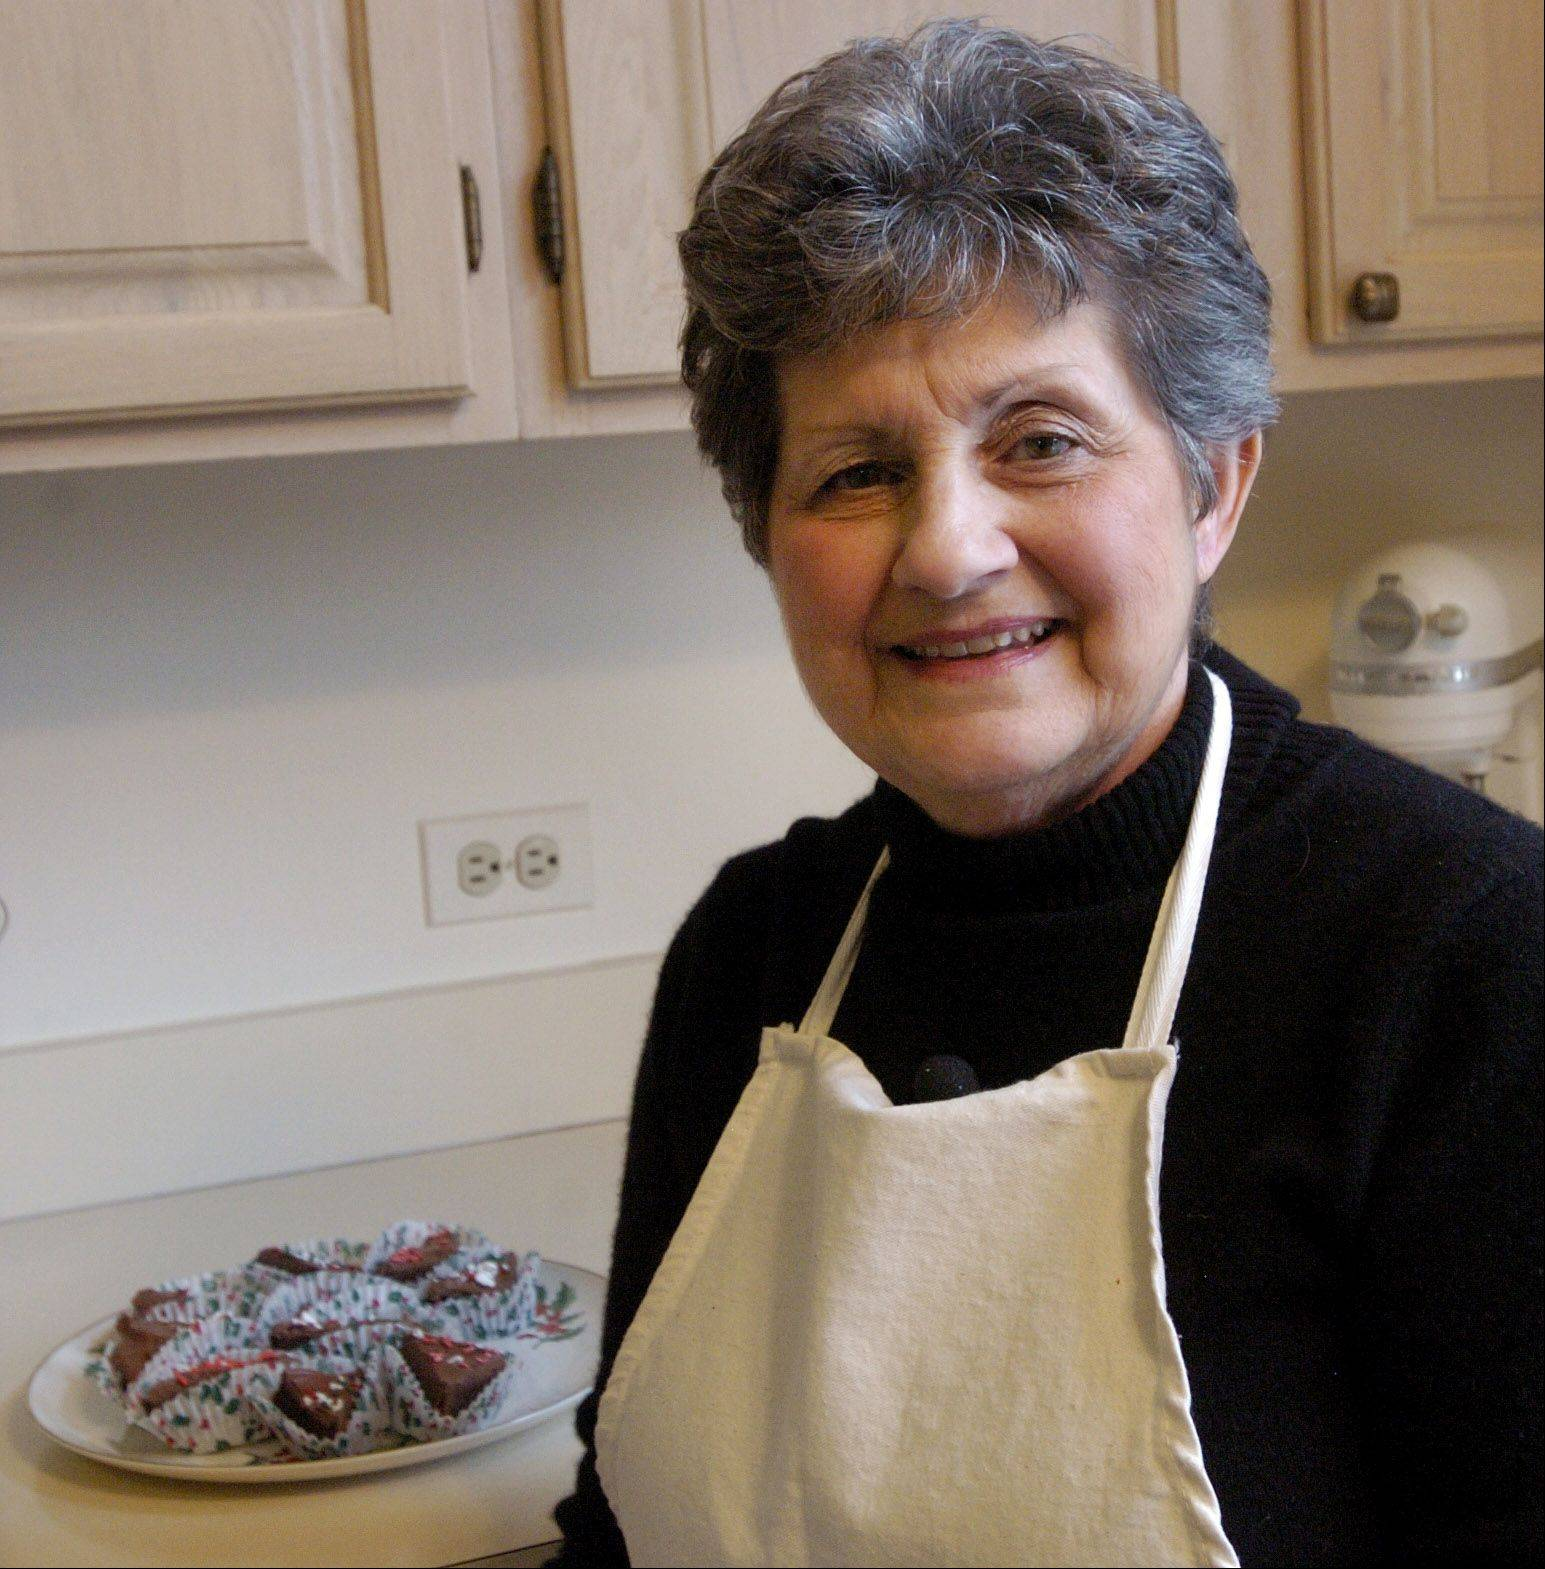 Cook of the Week Adele Knickels sees baking as a way to make new memories and keep older memories alive